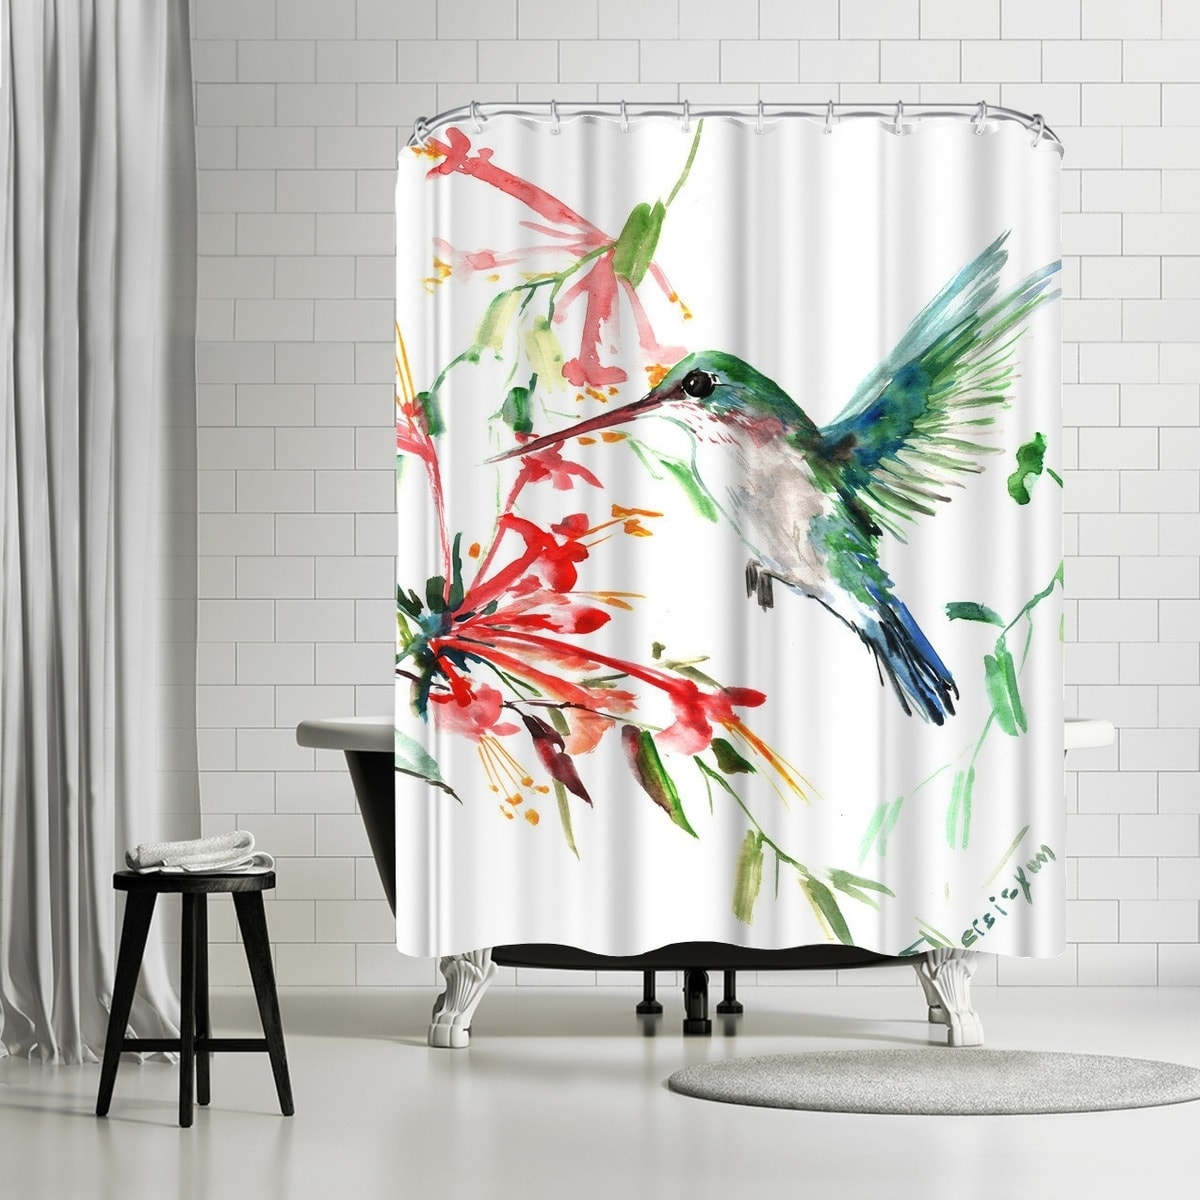 Americanflat Flying Hummingbird Shower Curtain